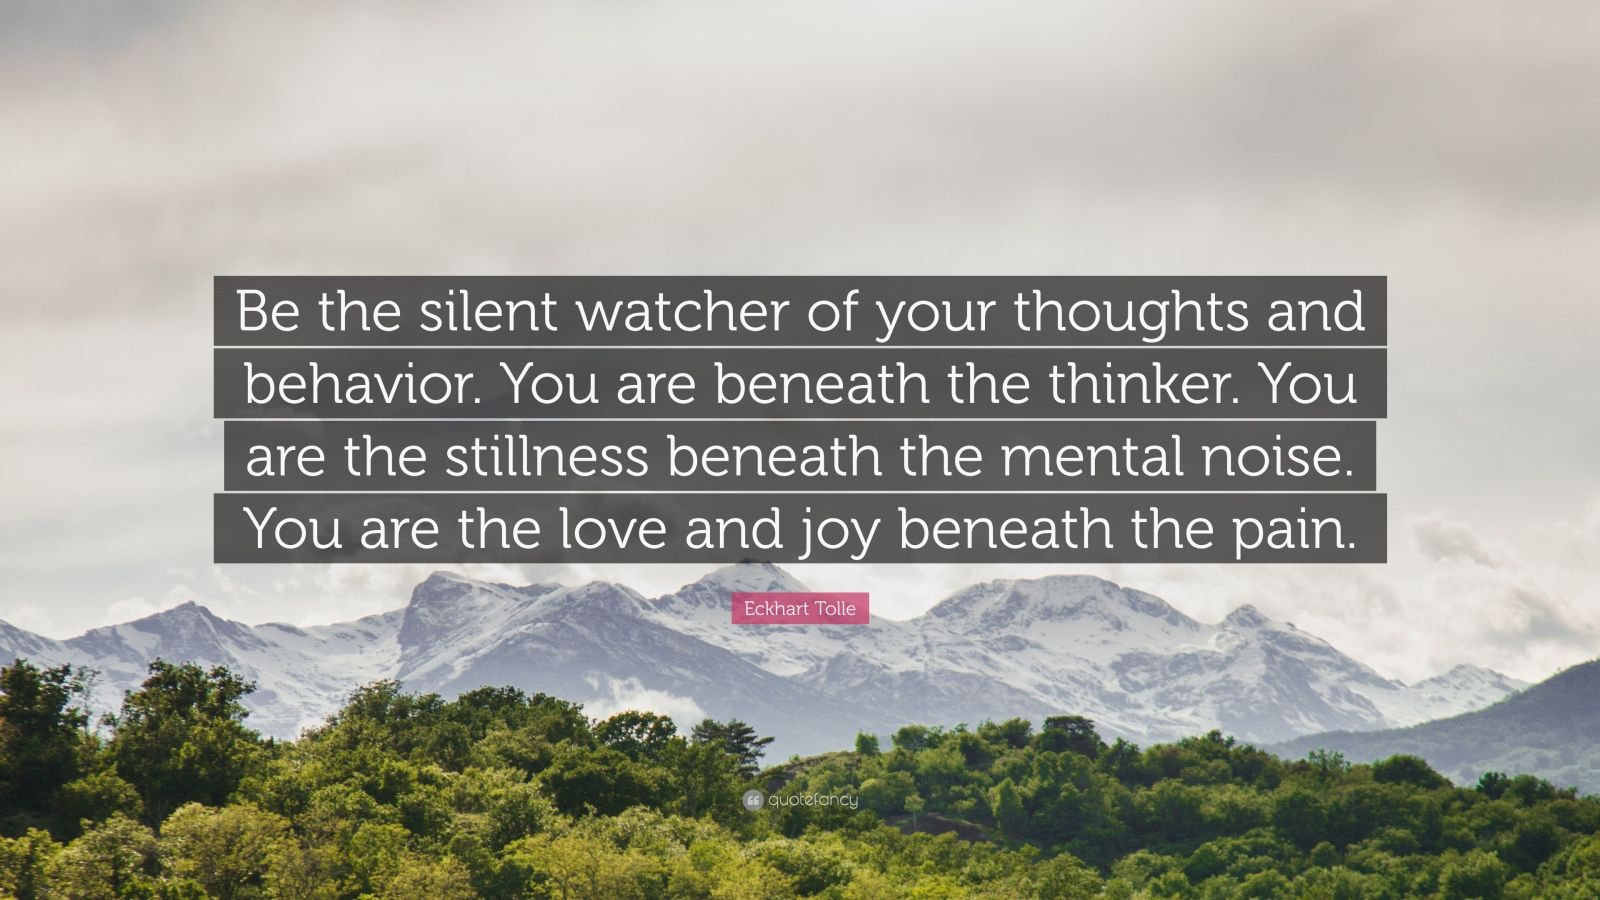 "Mindfulness Quotes: ""Be the silent watcher of your thoughts and behavior. You are beneath the thinker. You are the stillness beneath the mental noise. You are the love and joy beneath the pain."" — Eckhart Tolle"